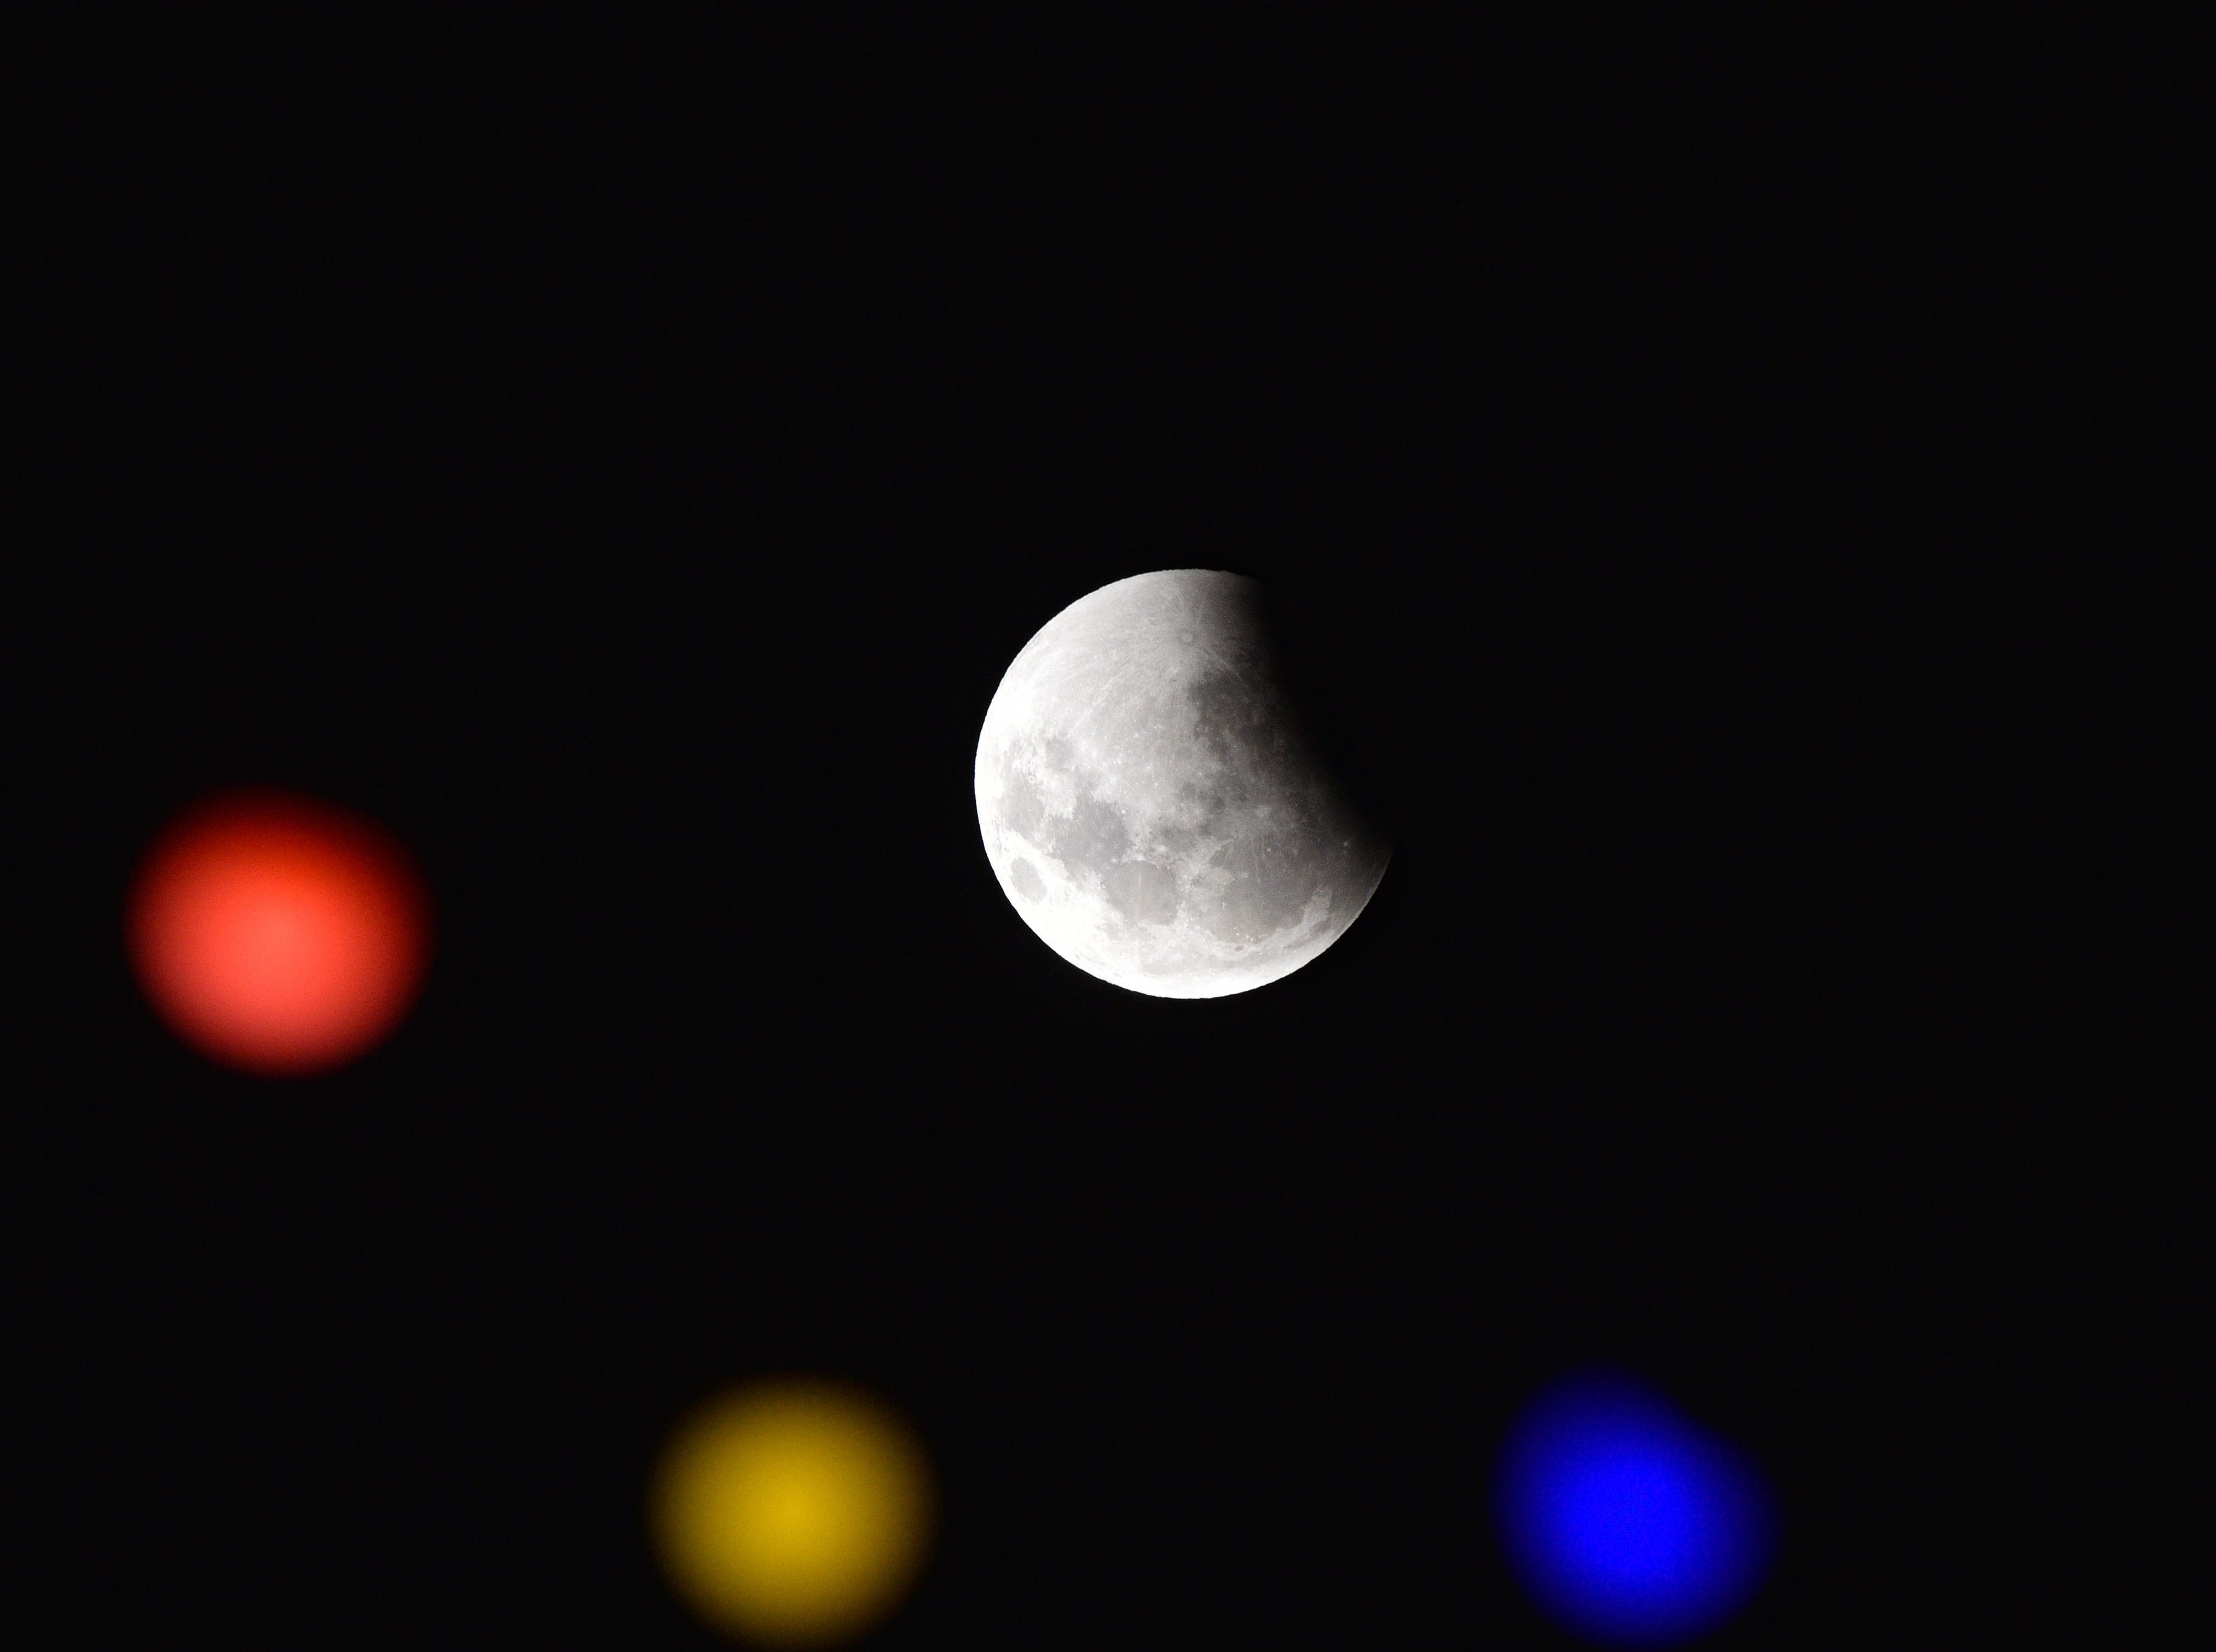 A total eclipse begins as the full moon shines over Montevideo on January 21, 2019 while color lights decorate 18 de julio Avenue ahead of carnival festivities in Uruguay. - An unusual set of celestial circumstances comes together Sunday for skywatchers in Europe, Africa and the Americas, where a total lunar eclipse may be glimpsed, offering a view of a large, red Moon.